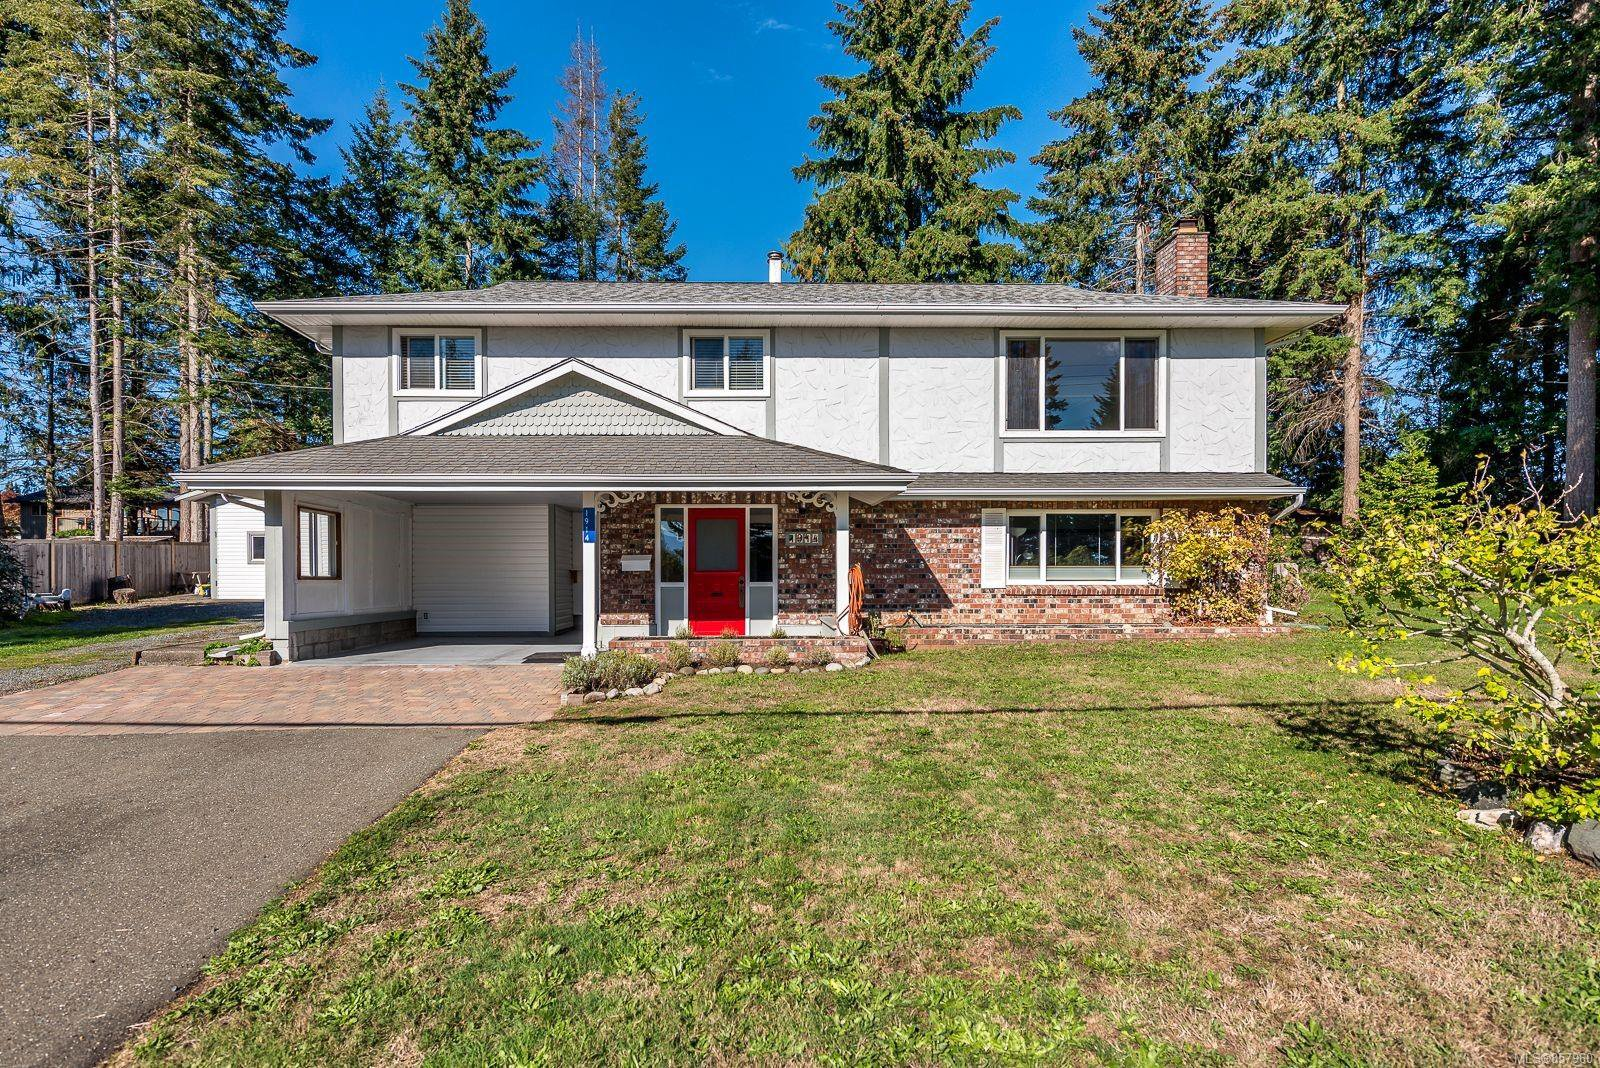 Main Photo: 1914 Bolt Ave in : CV Comox (Town of) House for sale (Comox Valley)  : MLS®# 857960